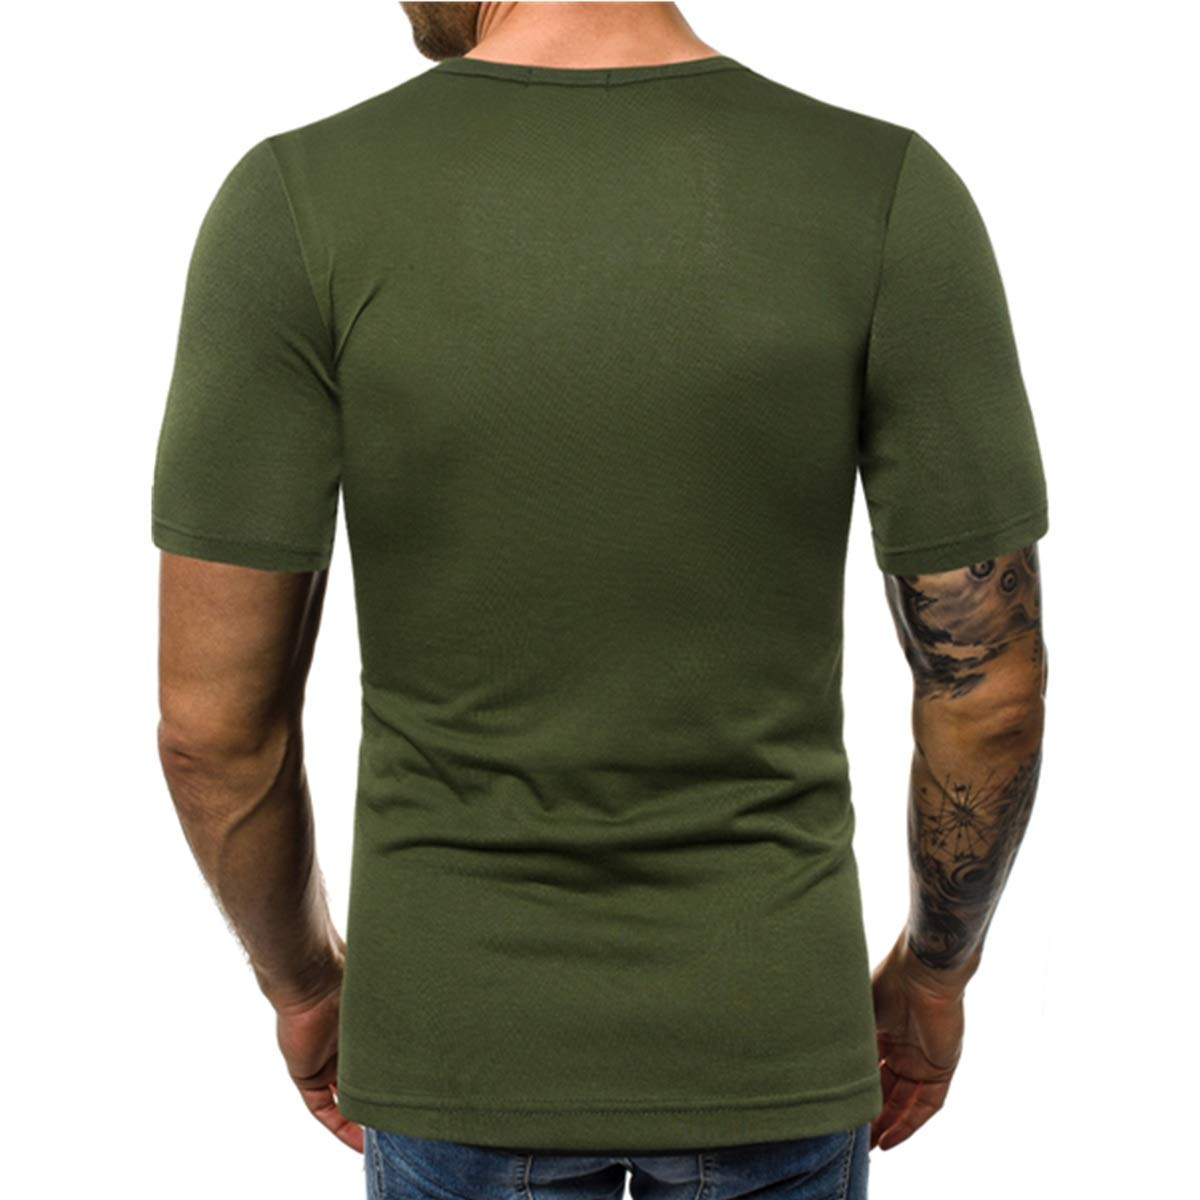 Galy Summer New Mens Slim Shirts Stitching Round Neck Large Size Simple Casual Short-Sleeved Shirts Pullover Top